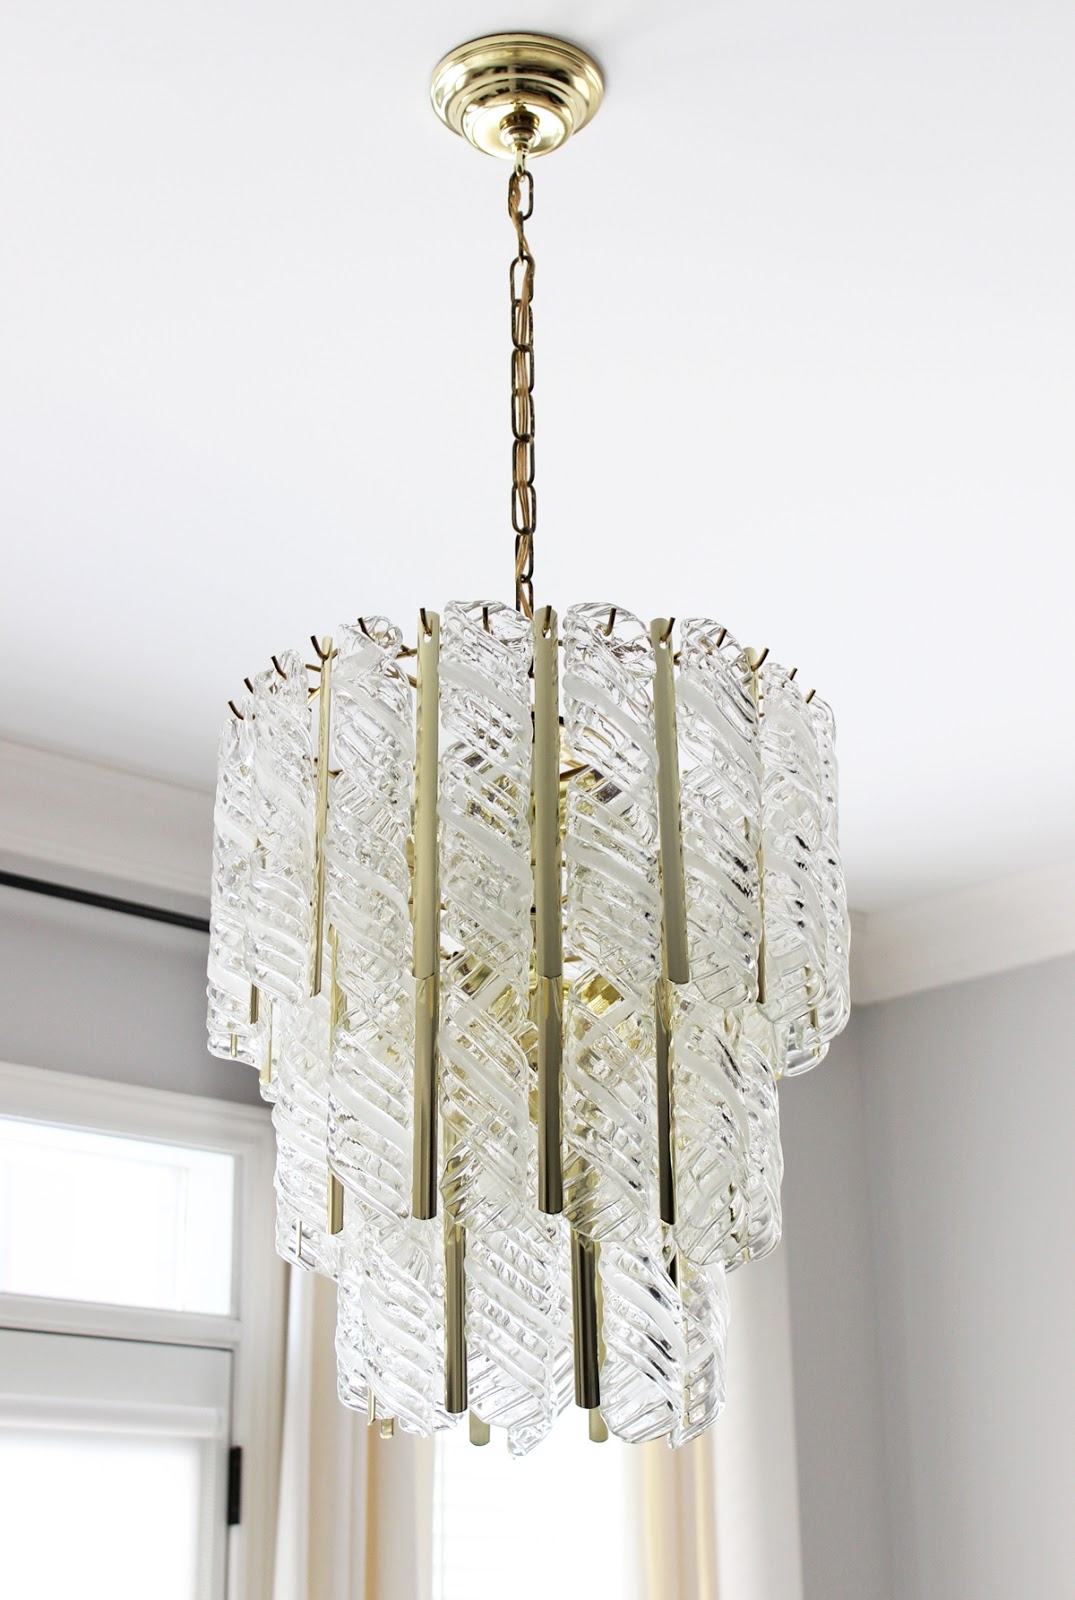 Vintage Venini Murano Glass Chandelier Am Dolce Vita Pinterest Regarding Murano Chandelier Replica (Image 15 of 15)